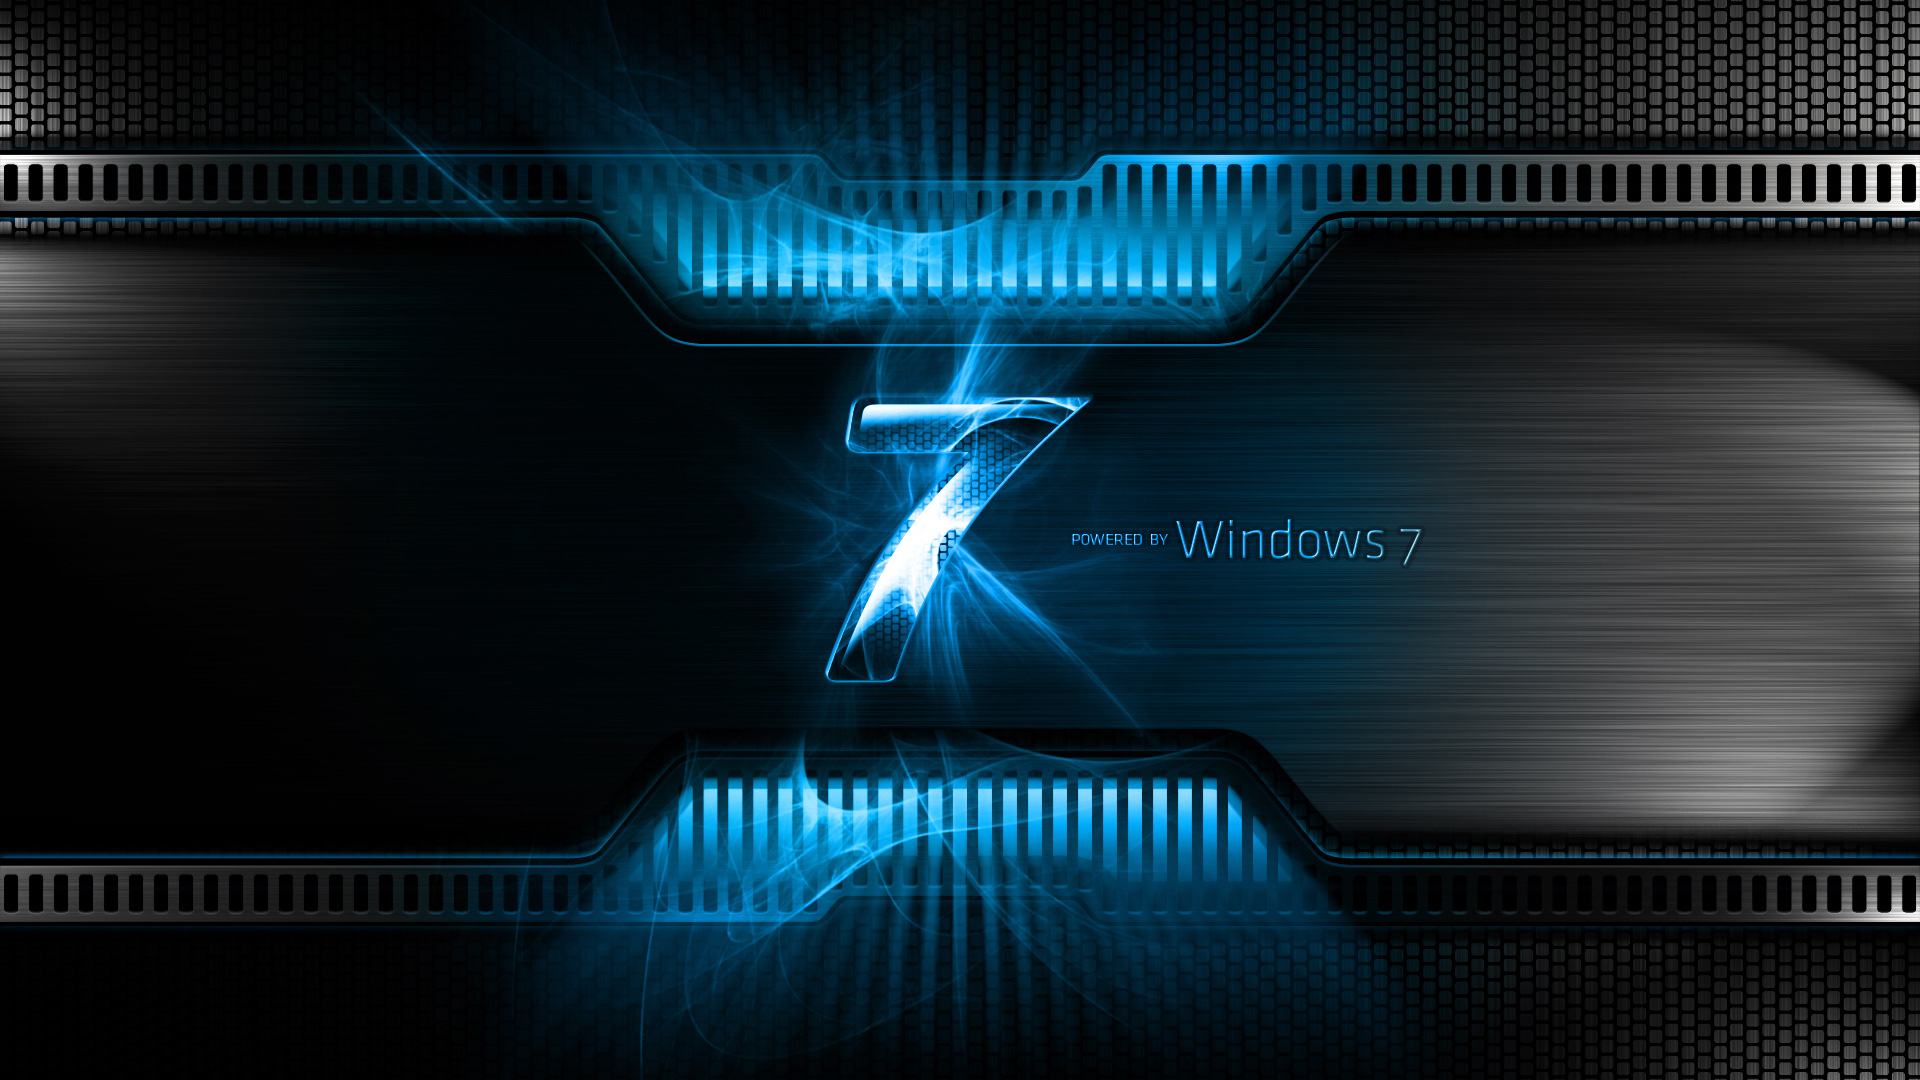 Windows 7 Power 327.92 Kb